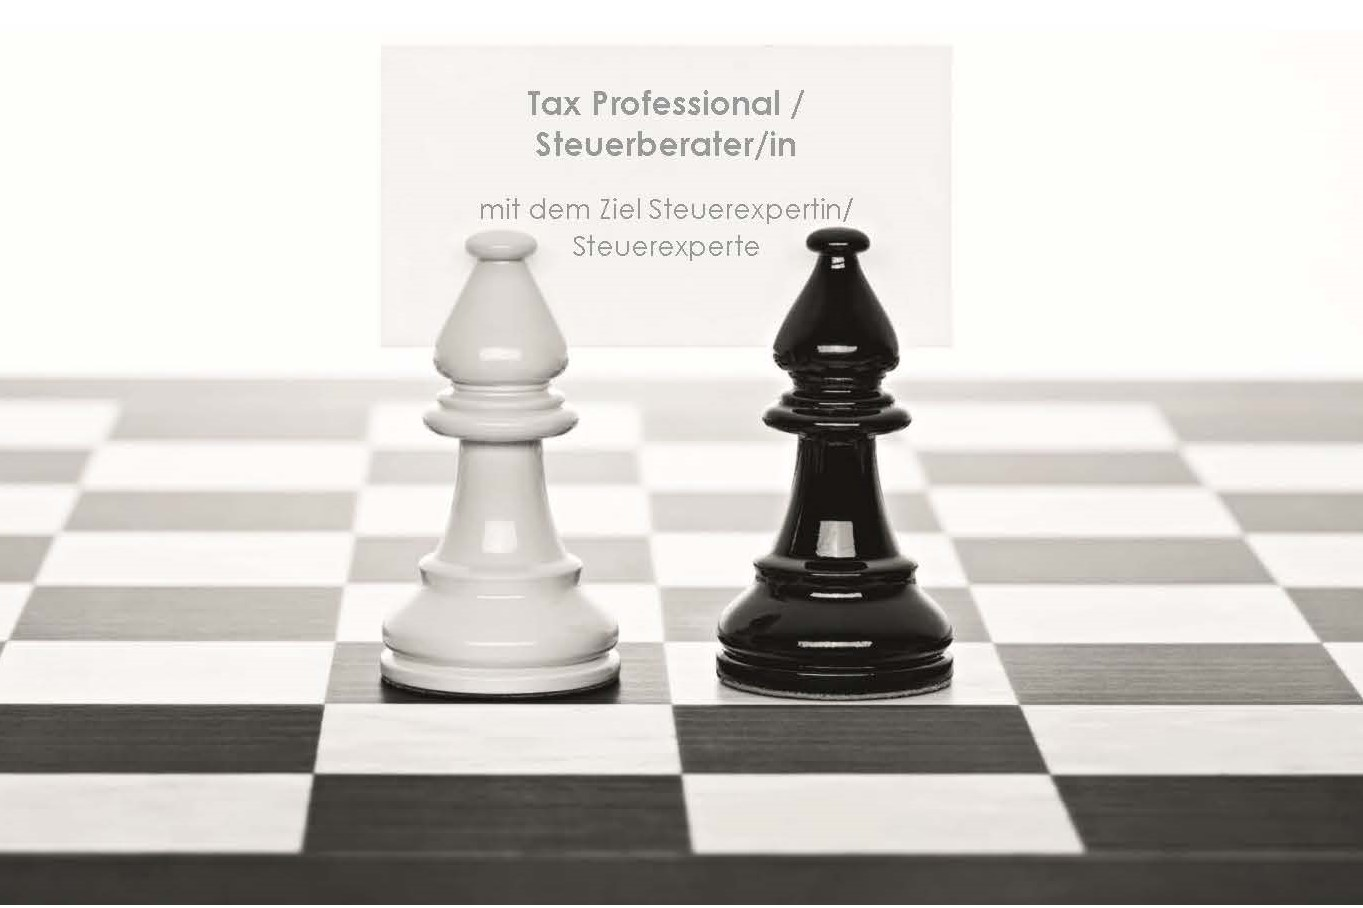 Tax Professional / Steuerberater/in